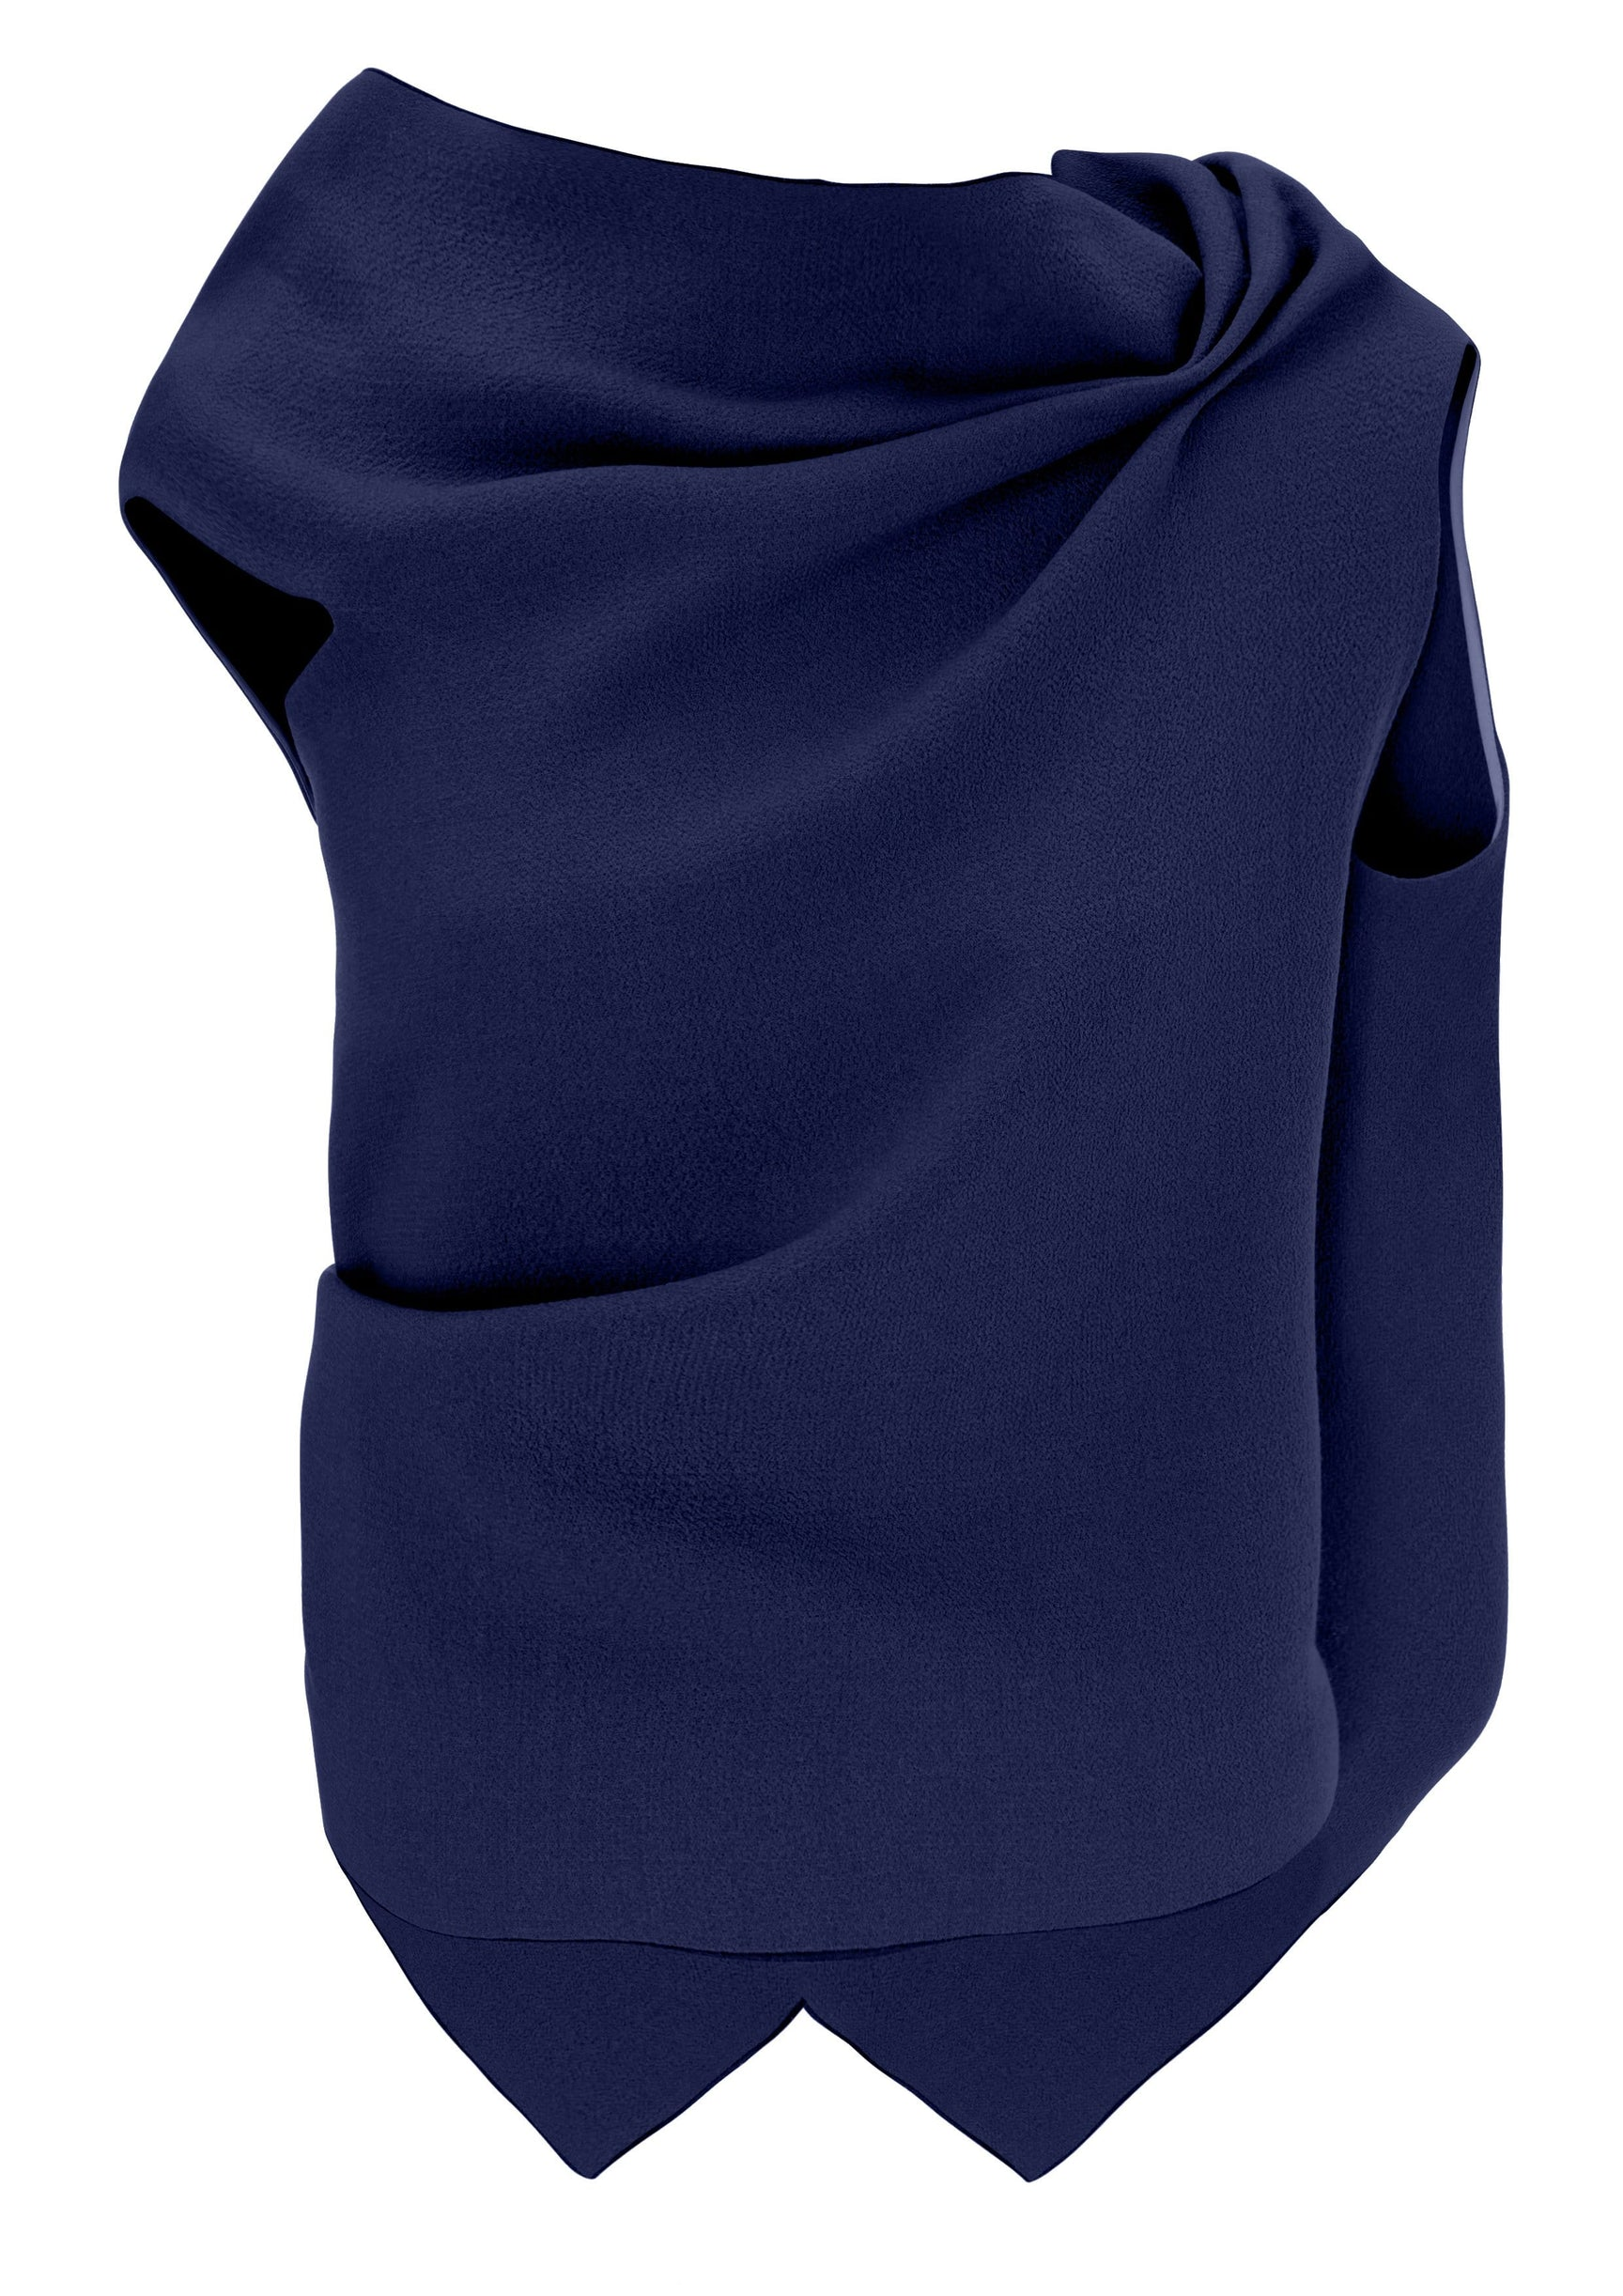 Eugene Top In Navy from Roland Mouret